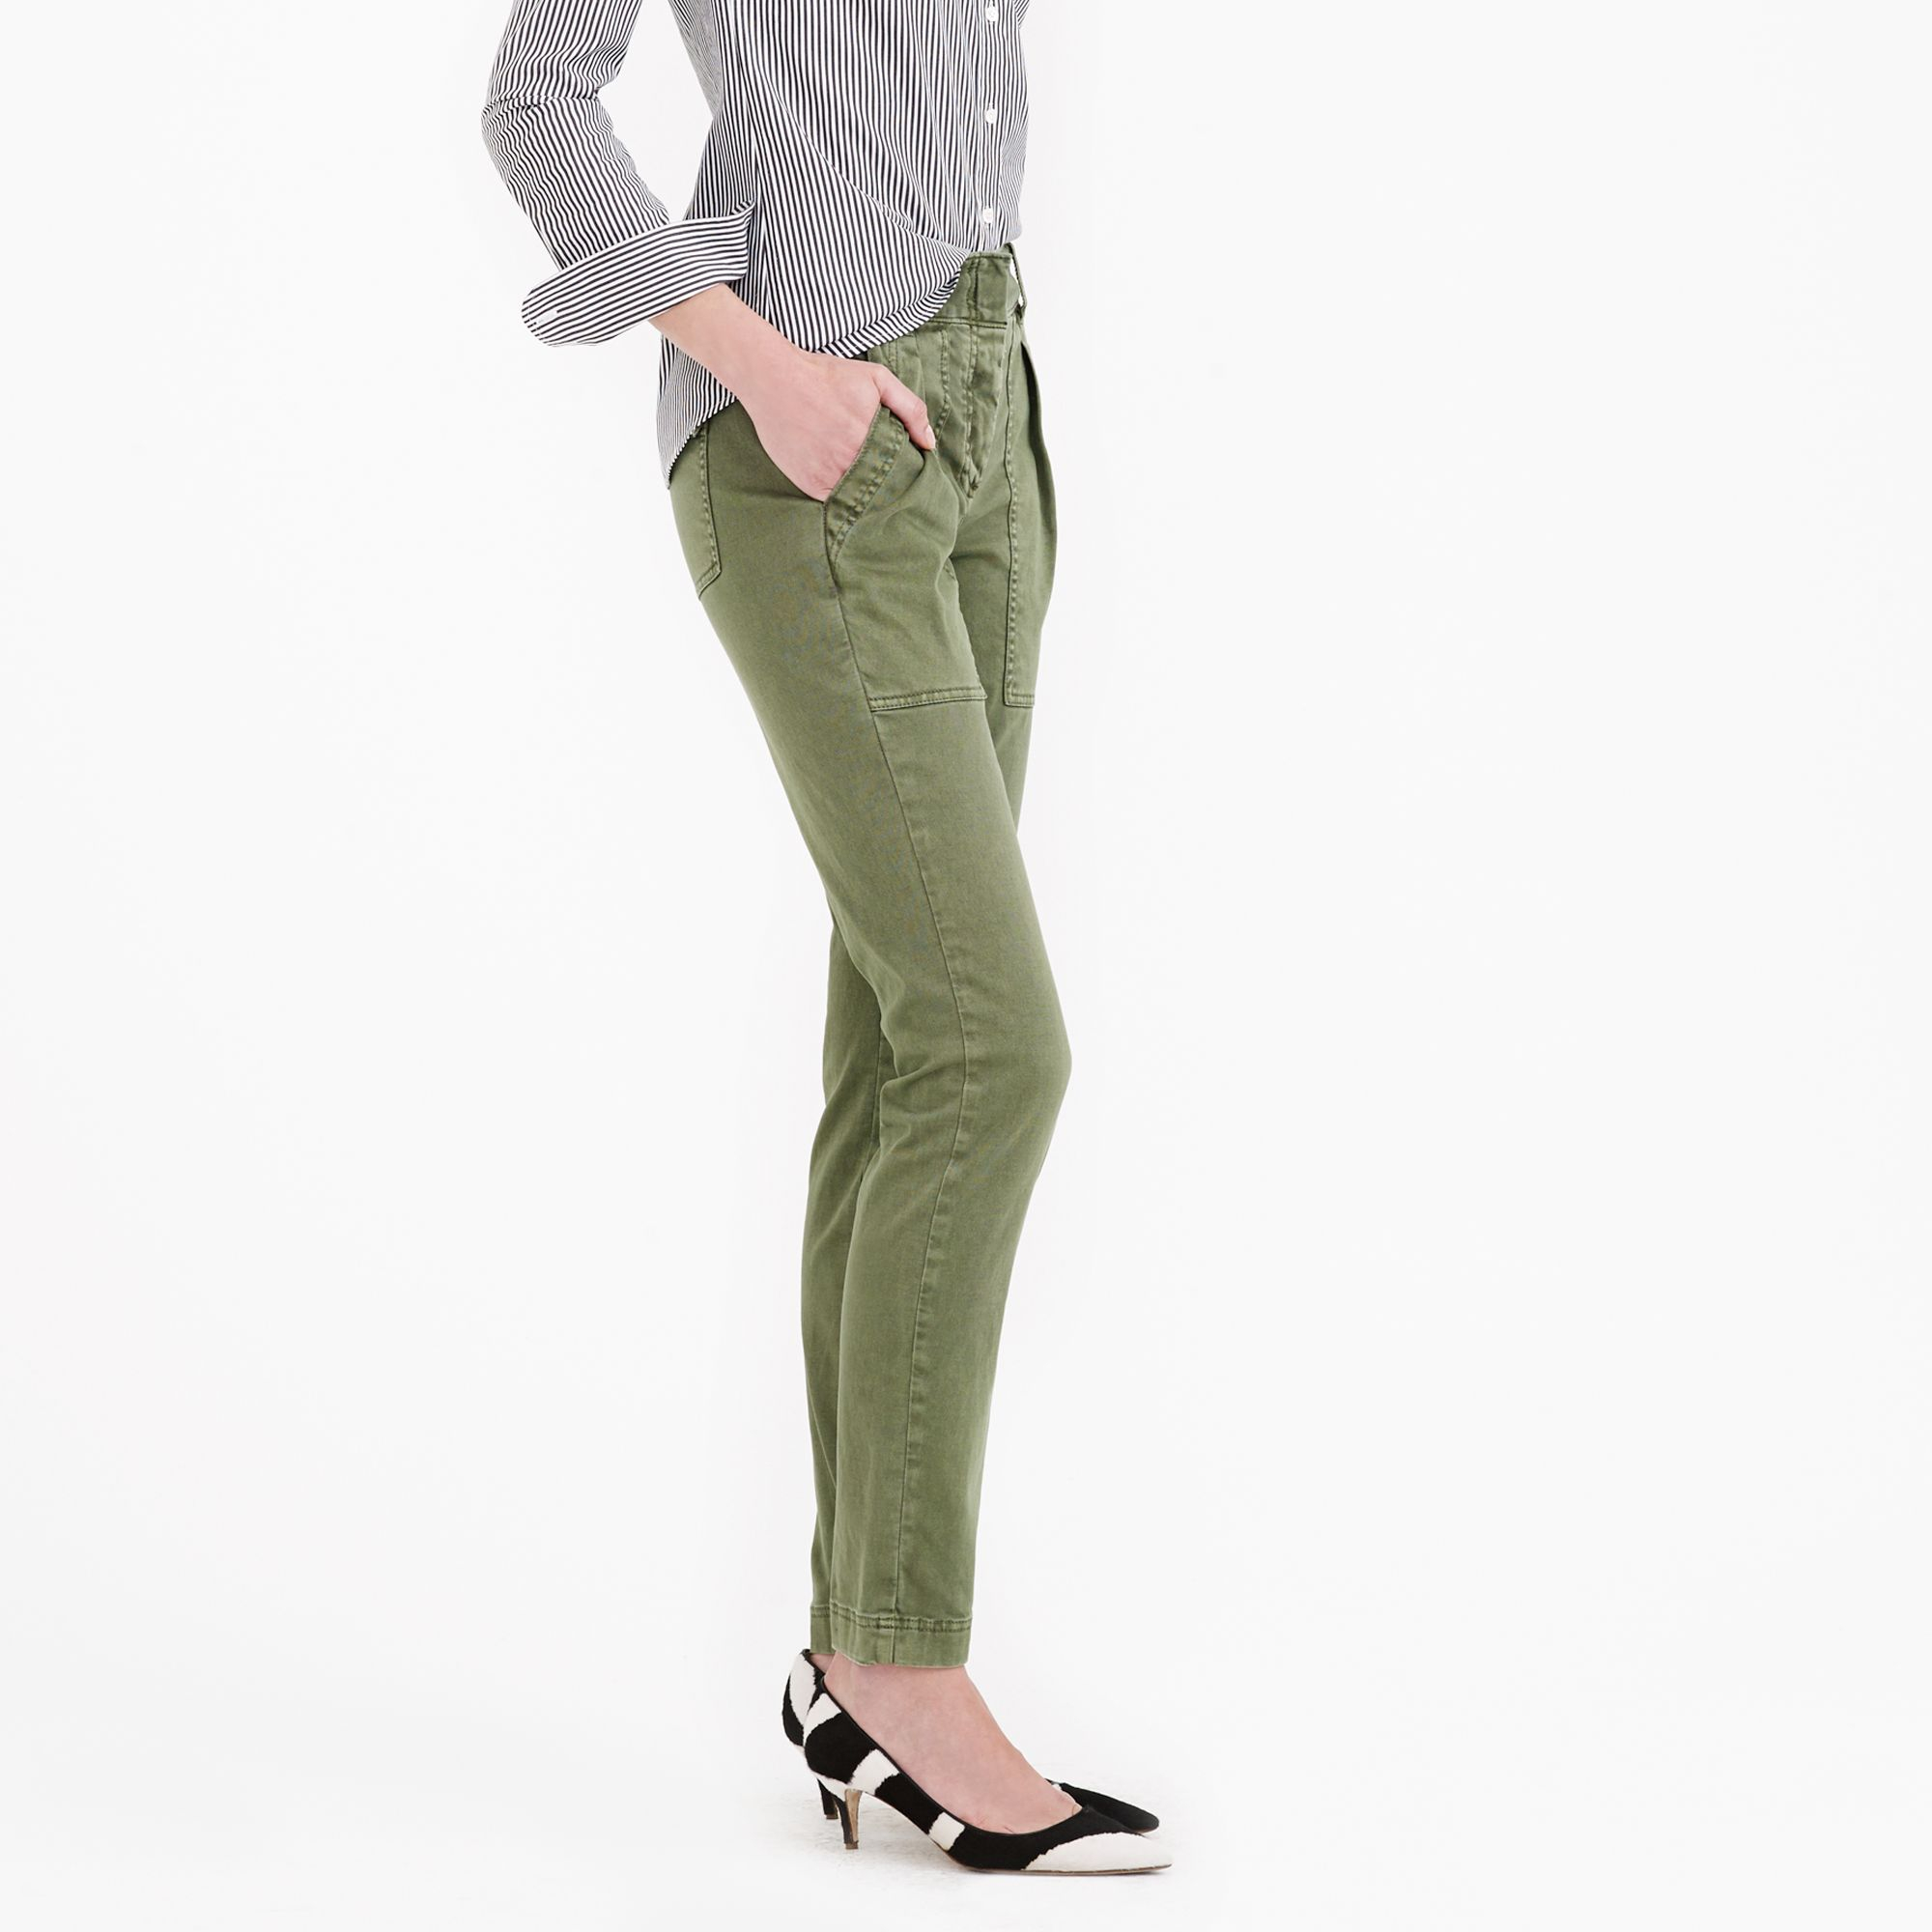 93a242a3ffe3e J.Crew Preorder Highrise Cargo Pant in Green - Lyst